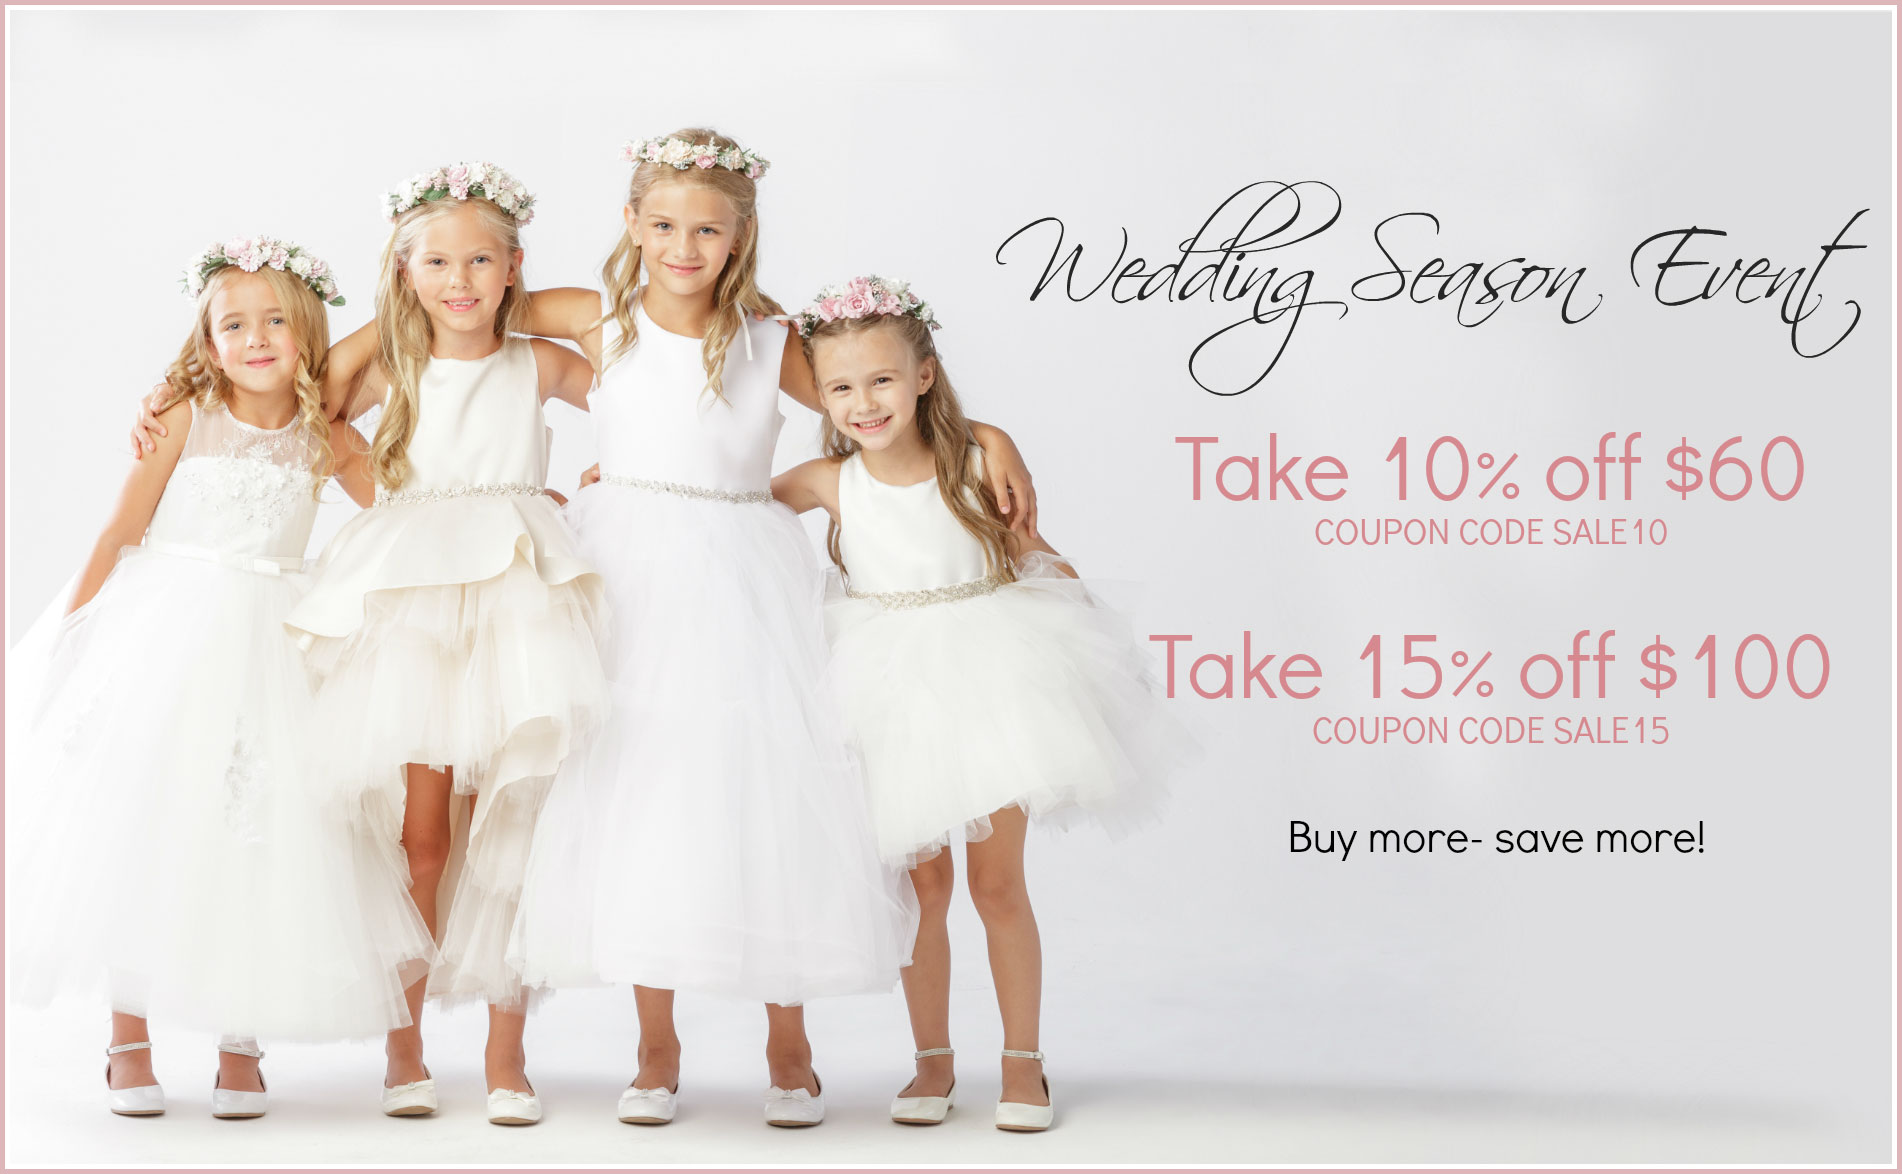 Flower girl dresses flower girl dress for less wedding season sale event girls dresses mightylinksfo